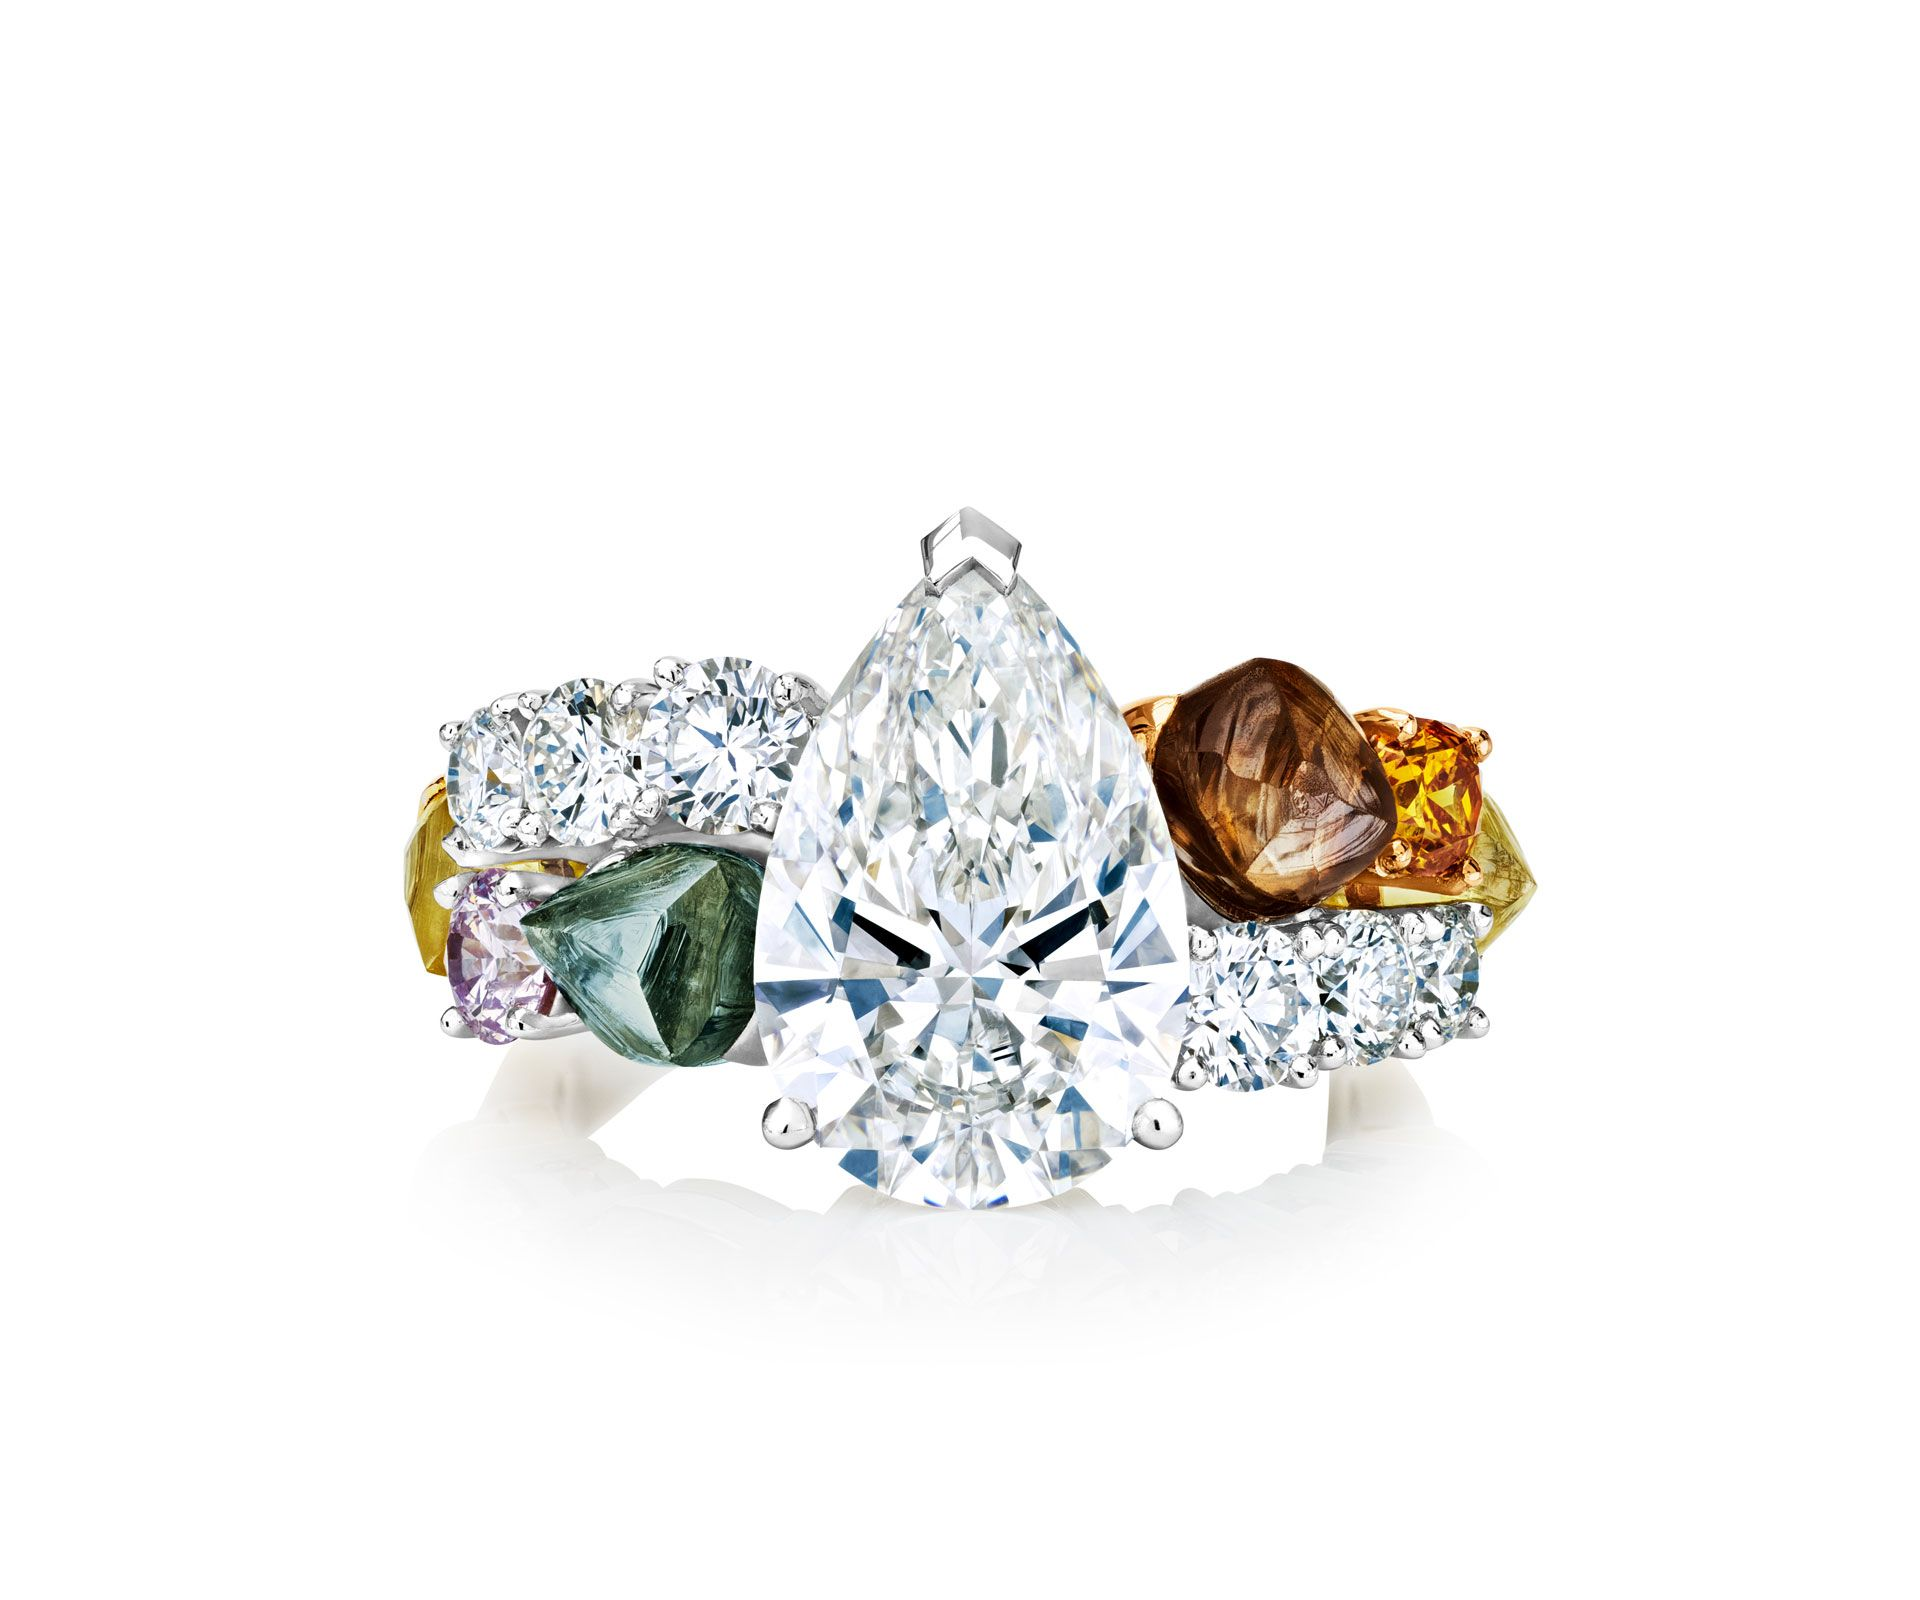 Vulcan pearshaped ring multicolored gemstones pinterest rings